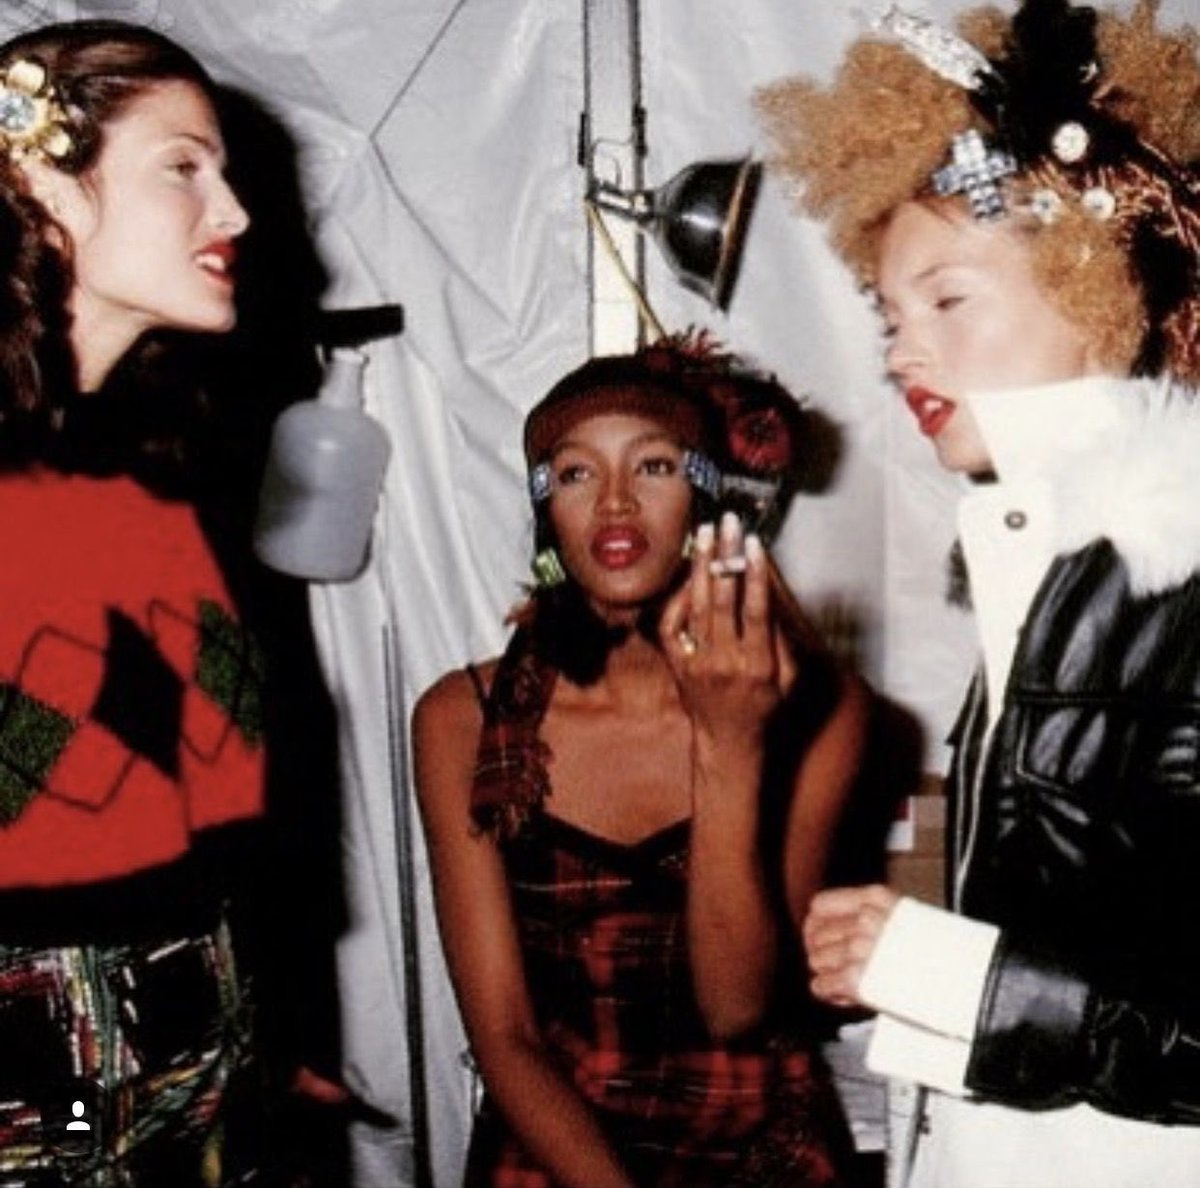 Backstage photos in the 90s <br>http://pic.twitter.com/Br6KiIdcwQ